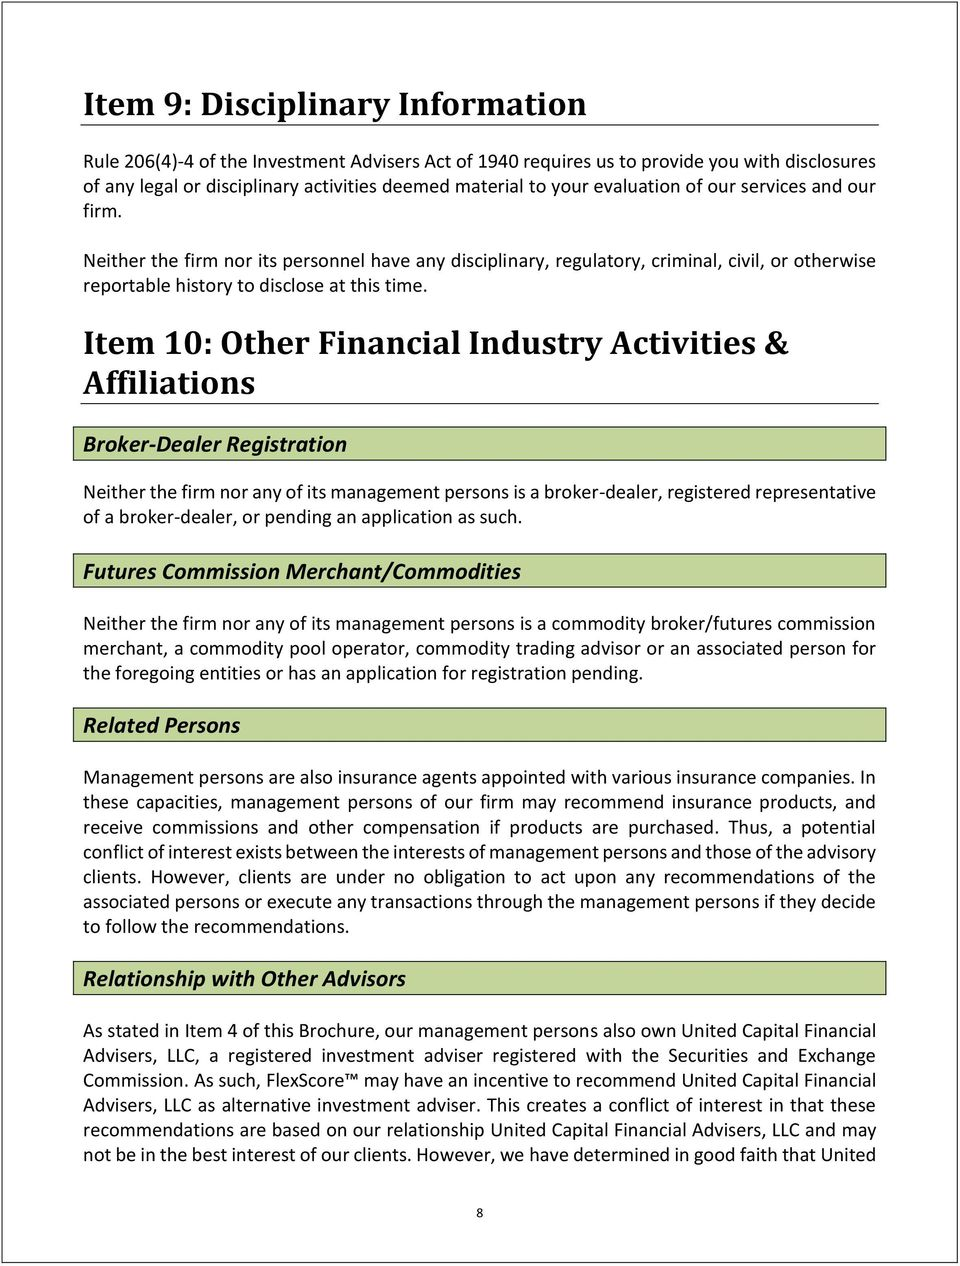 Item 10: Other Financial Industry Activities & Affiliations Broker-Dealer Registration Neither the firm nor any of its management persons is a broker-dealer, registered representative of a